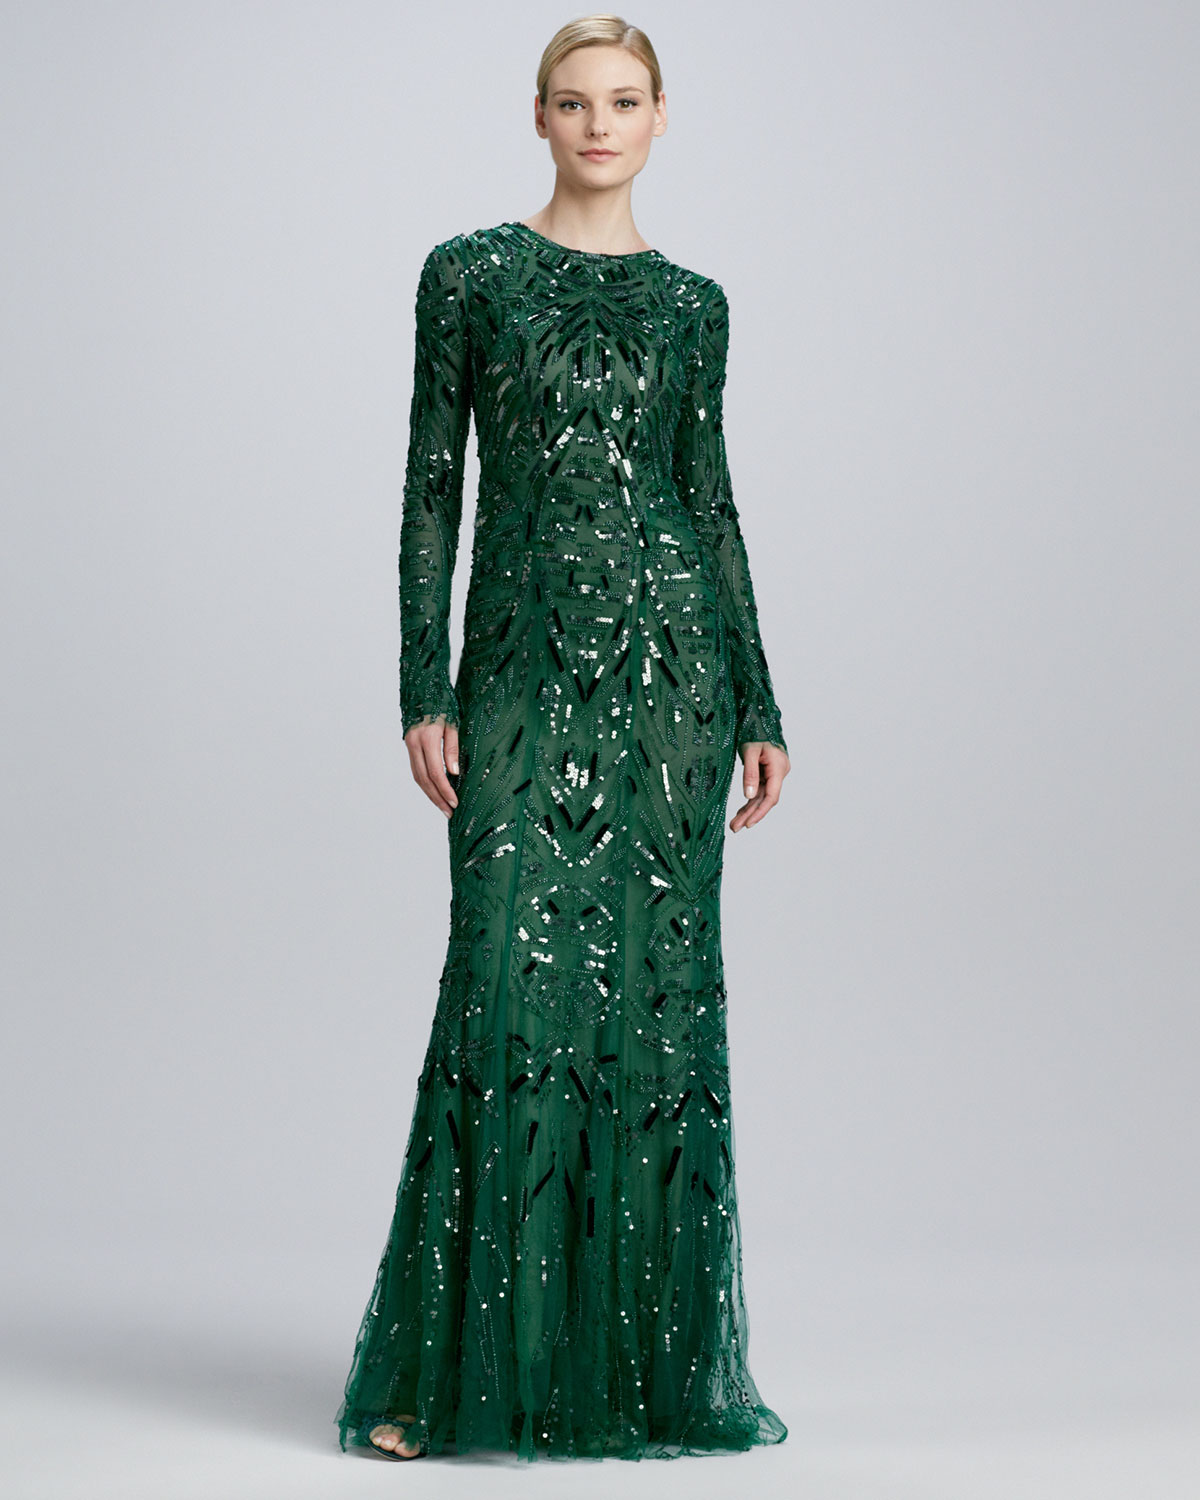 Lyst - Monique lhuillier Beaded Embroidered Long Sleeve Gown in Green